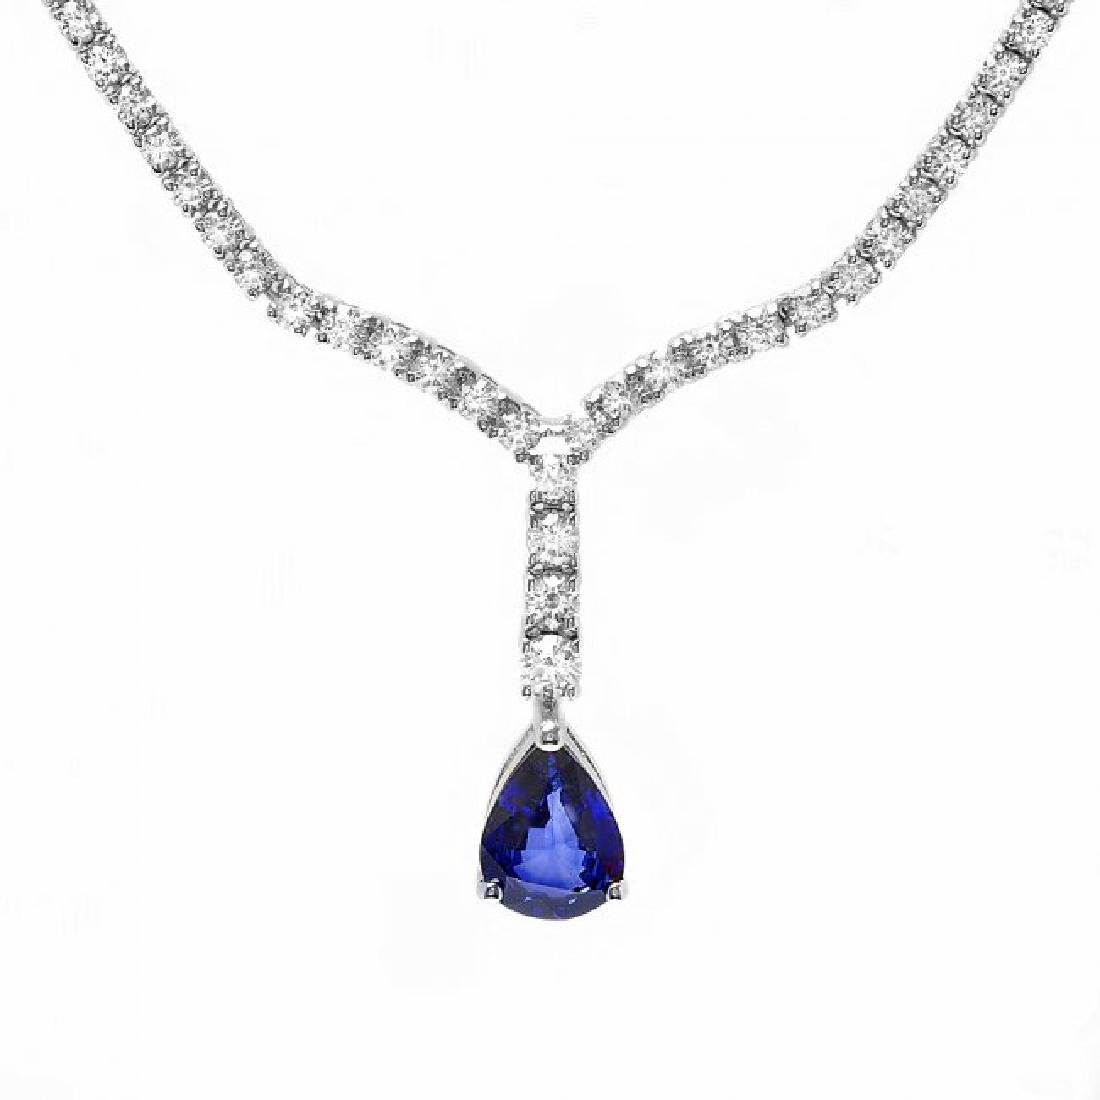 18k Gold 1.50ct Sapphire 3.50ct Diamond Necklace - 2